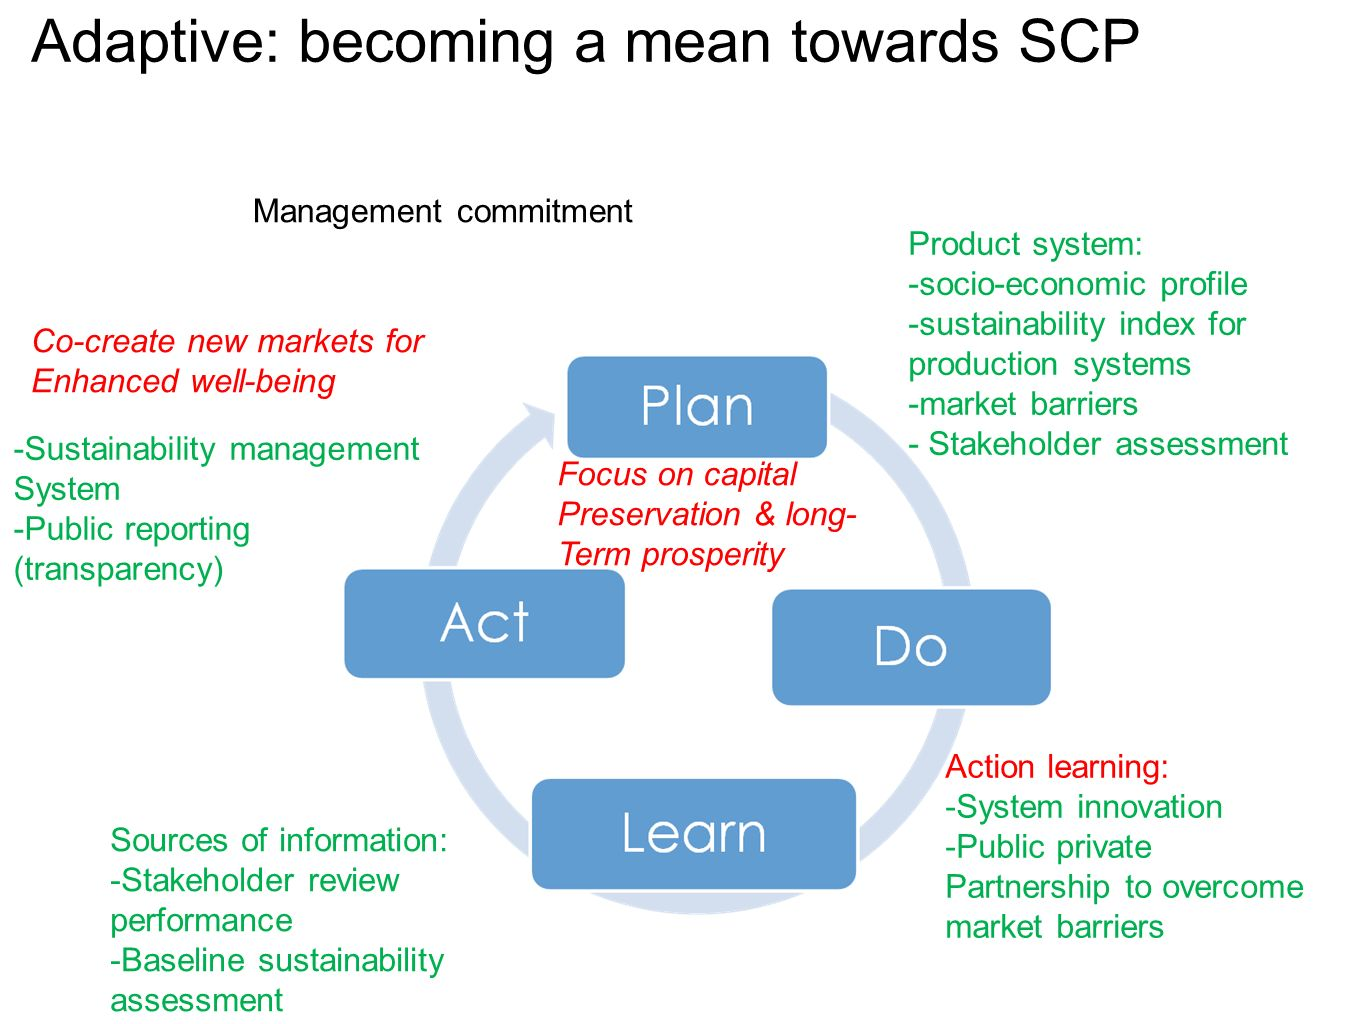 Adaptive: becoming a mean towards SCP